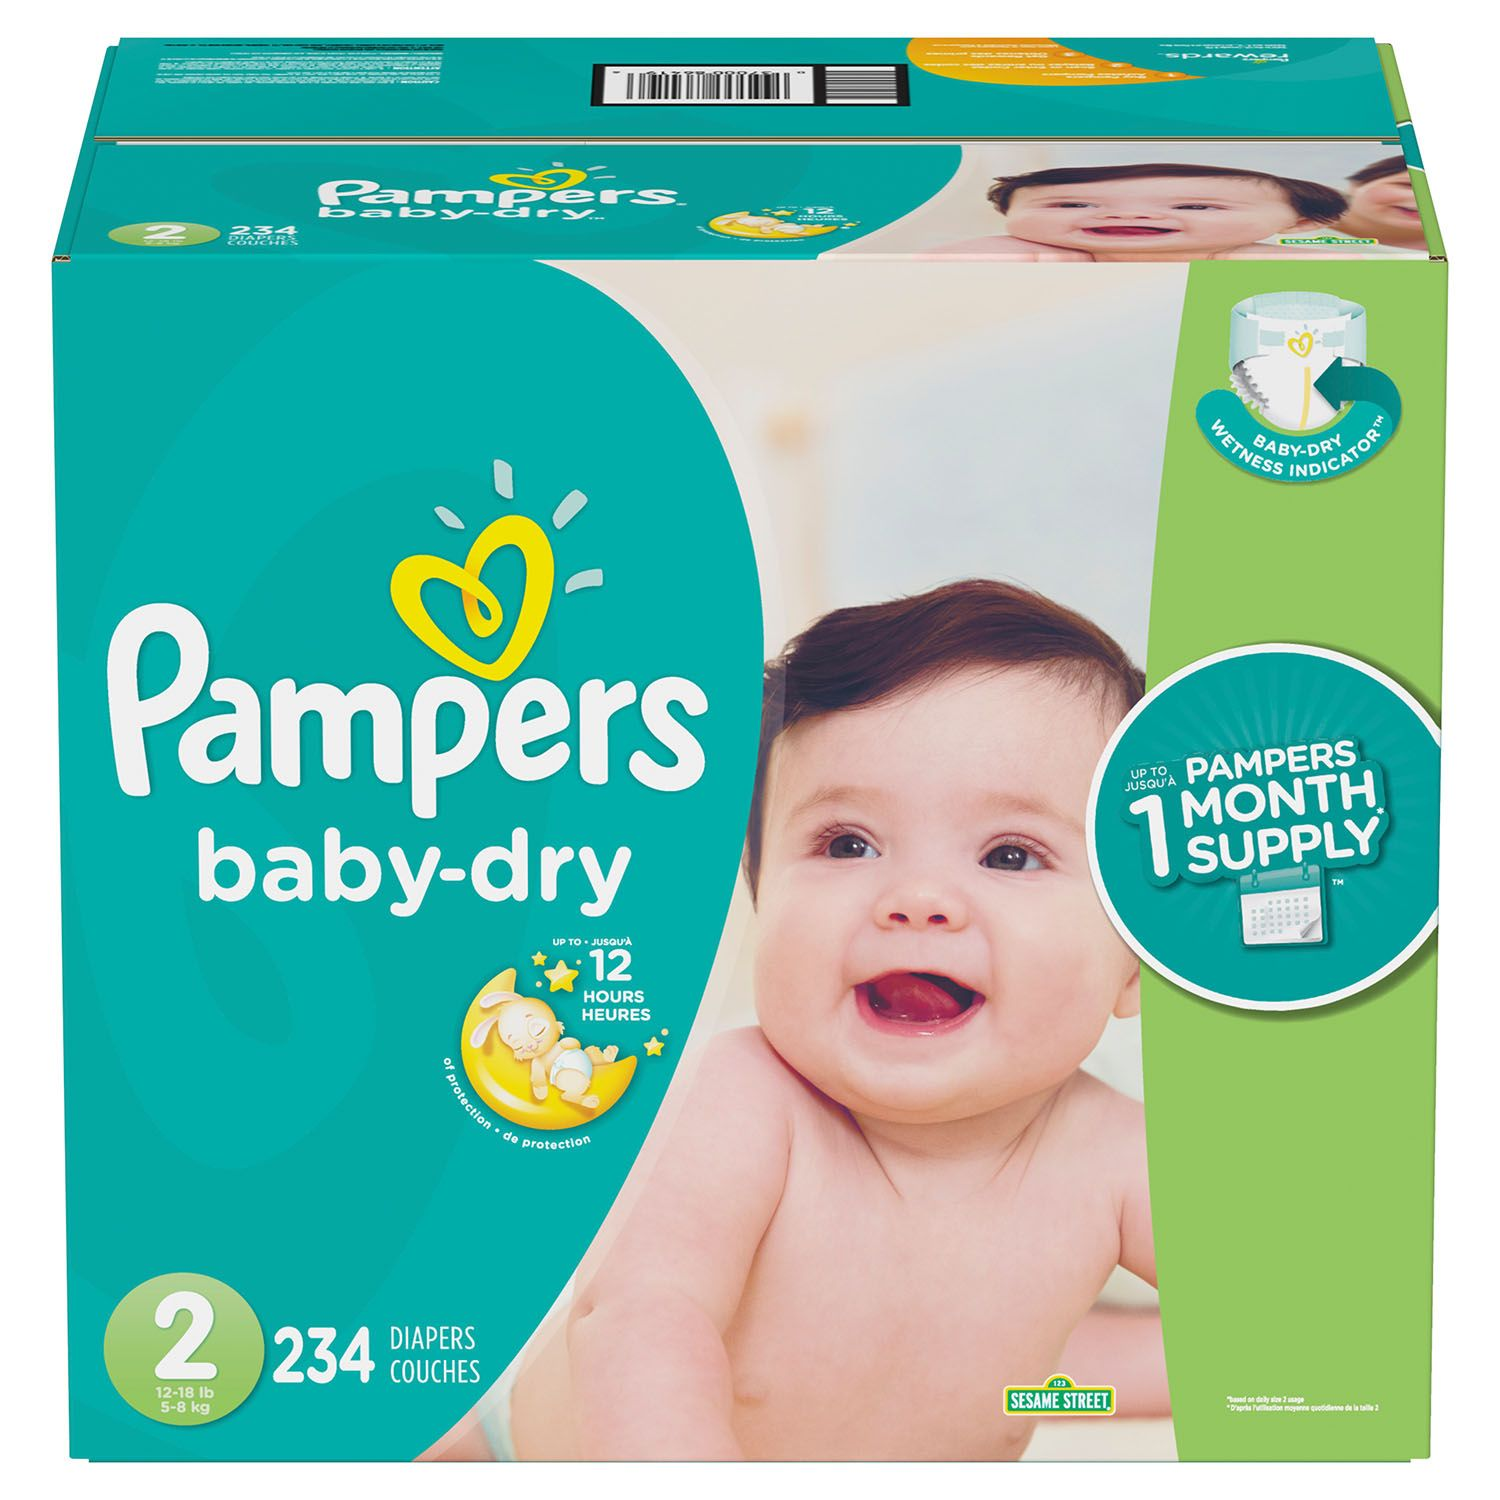 Pampers Baby Dry Diapers Size 2 Economy Pack 234 Count by Unbranded